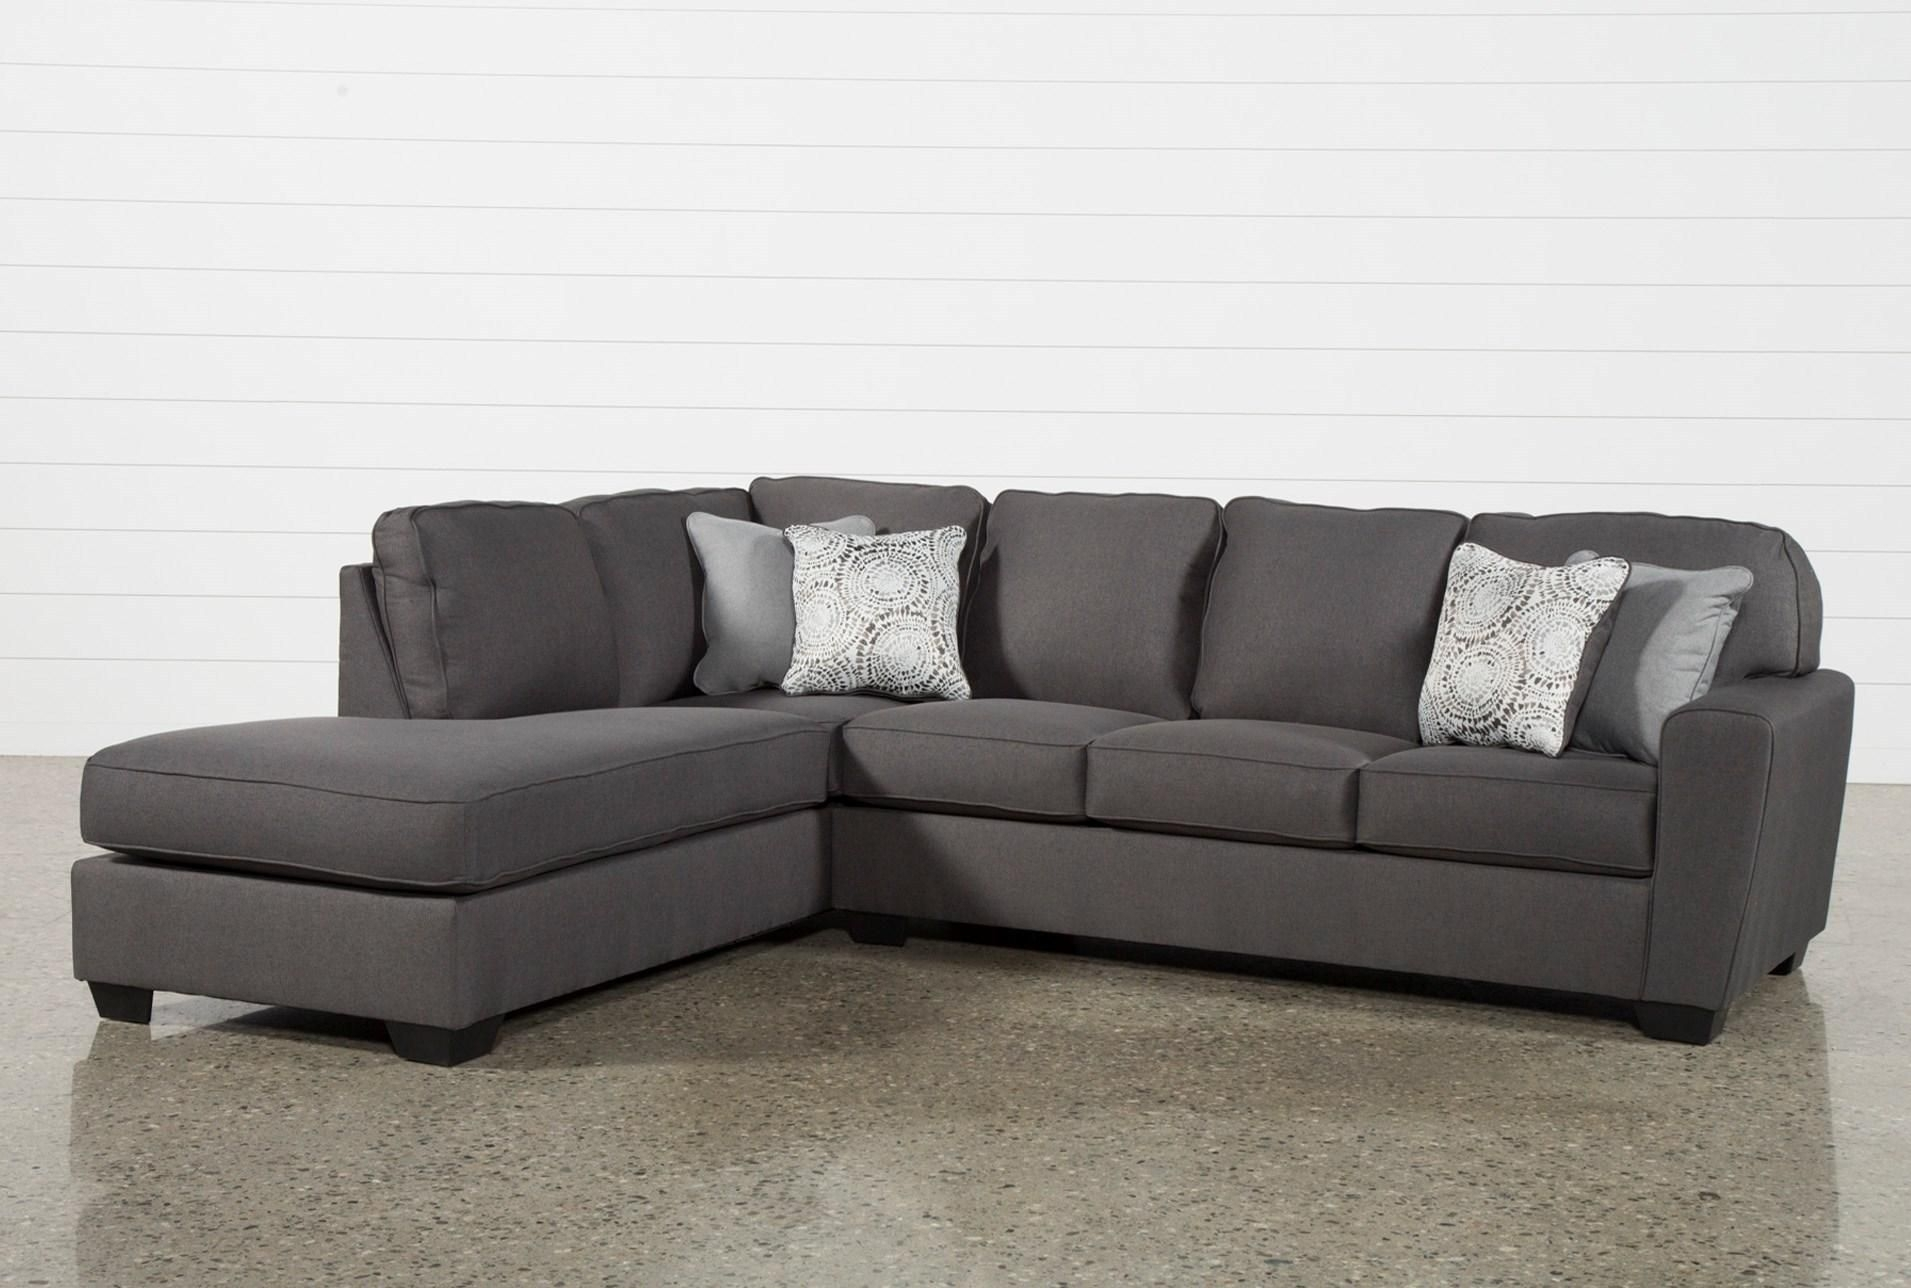 Mcdade Graphite 2 Piece Sectional W/laf Chaise | Graphite, Living Within Egan Ii Cement Sofa Sectionals With Reversible Chaise (View 2 of 25)